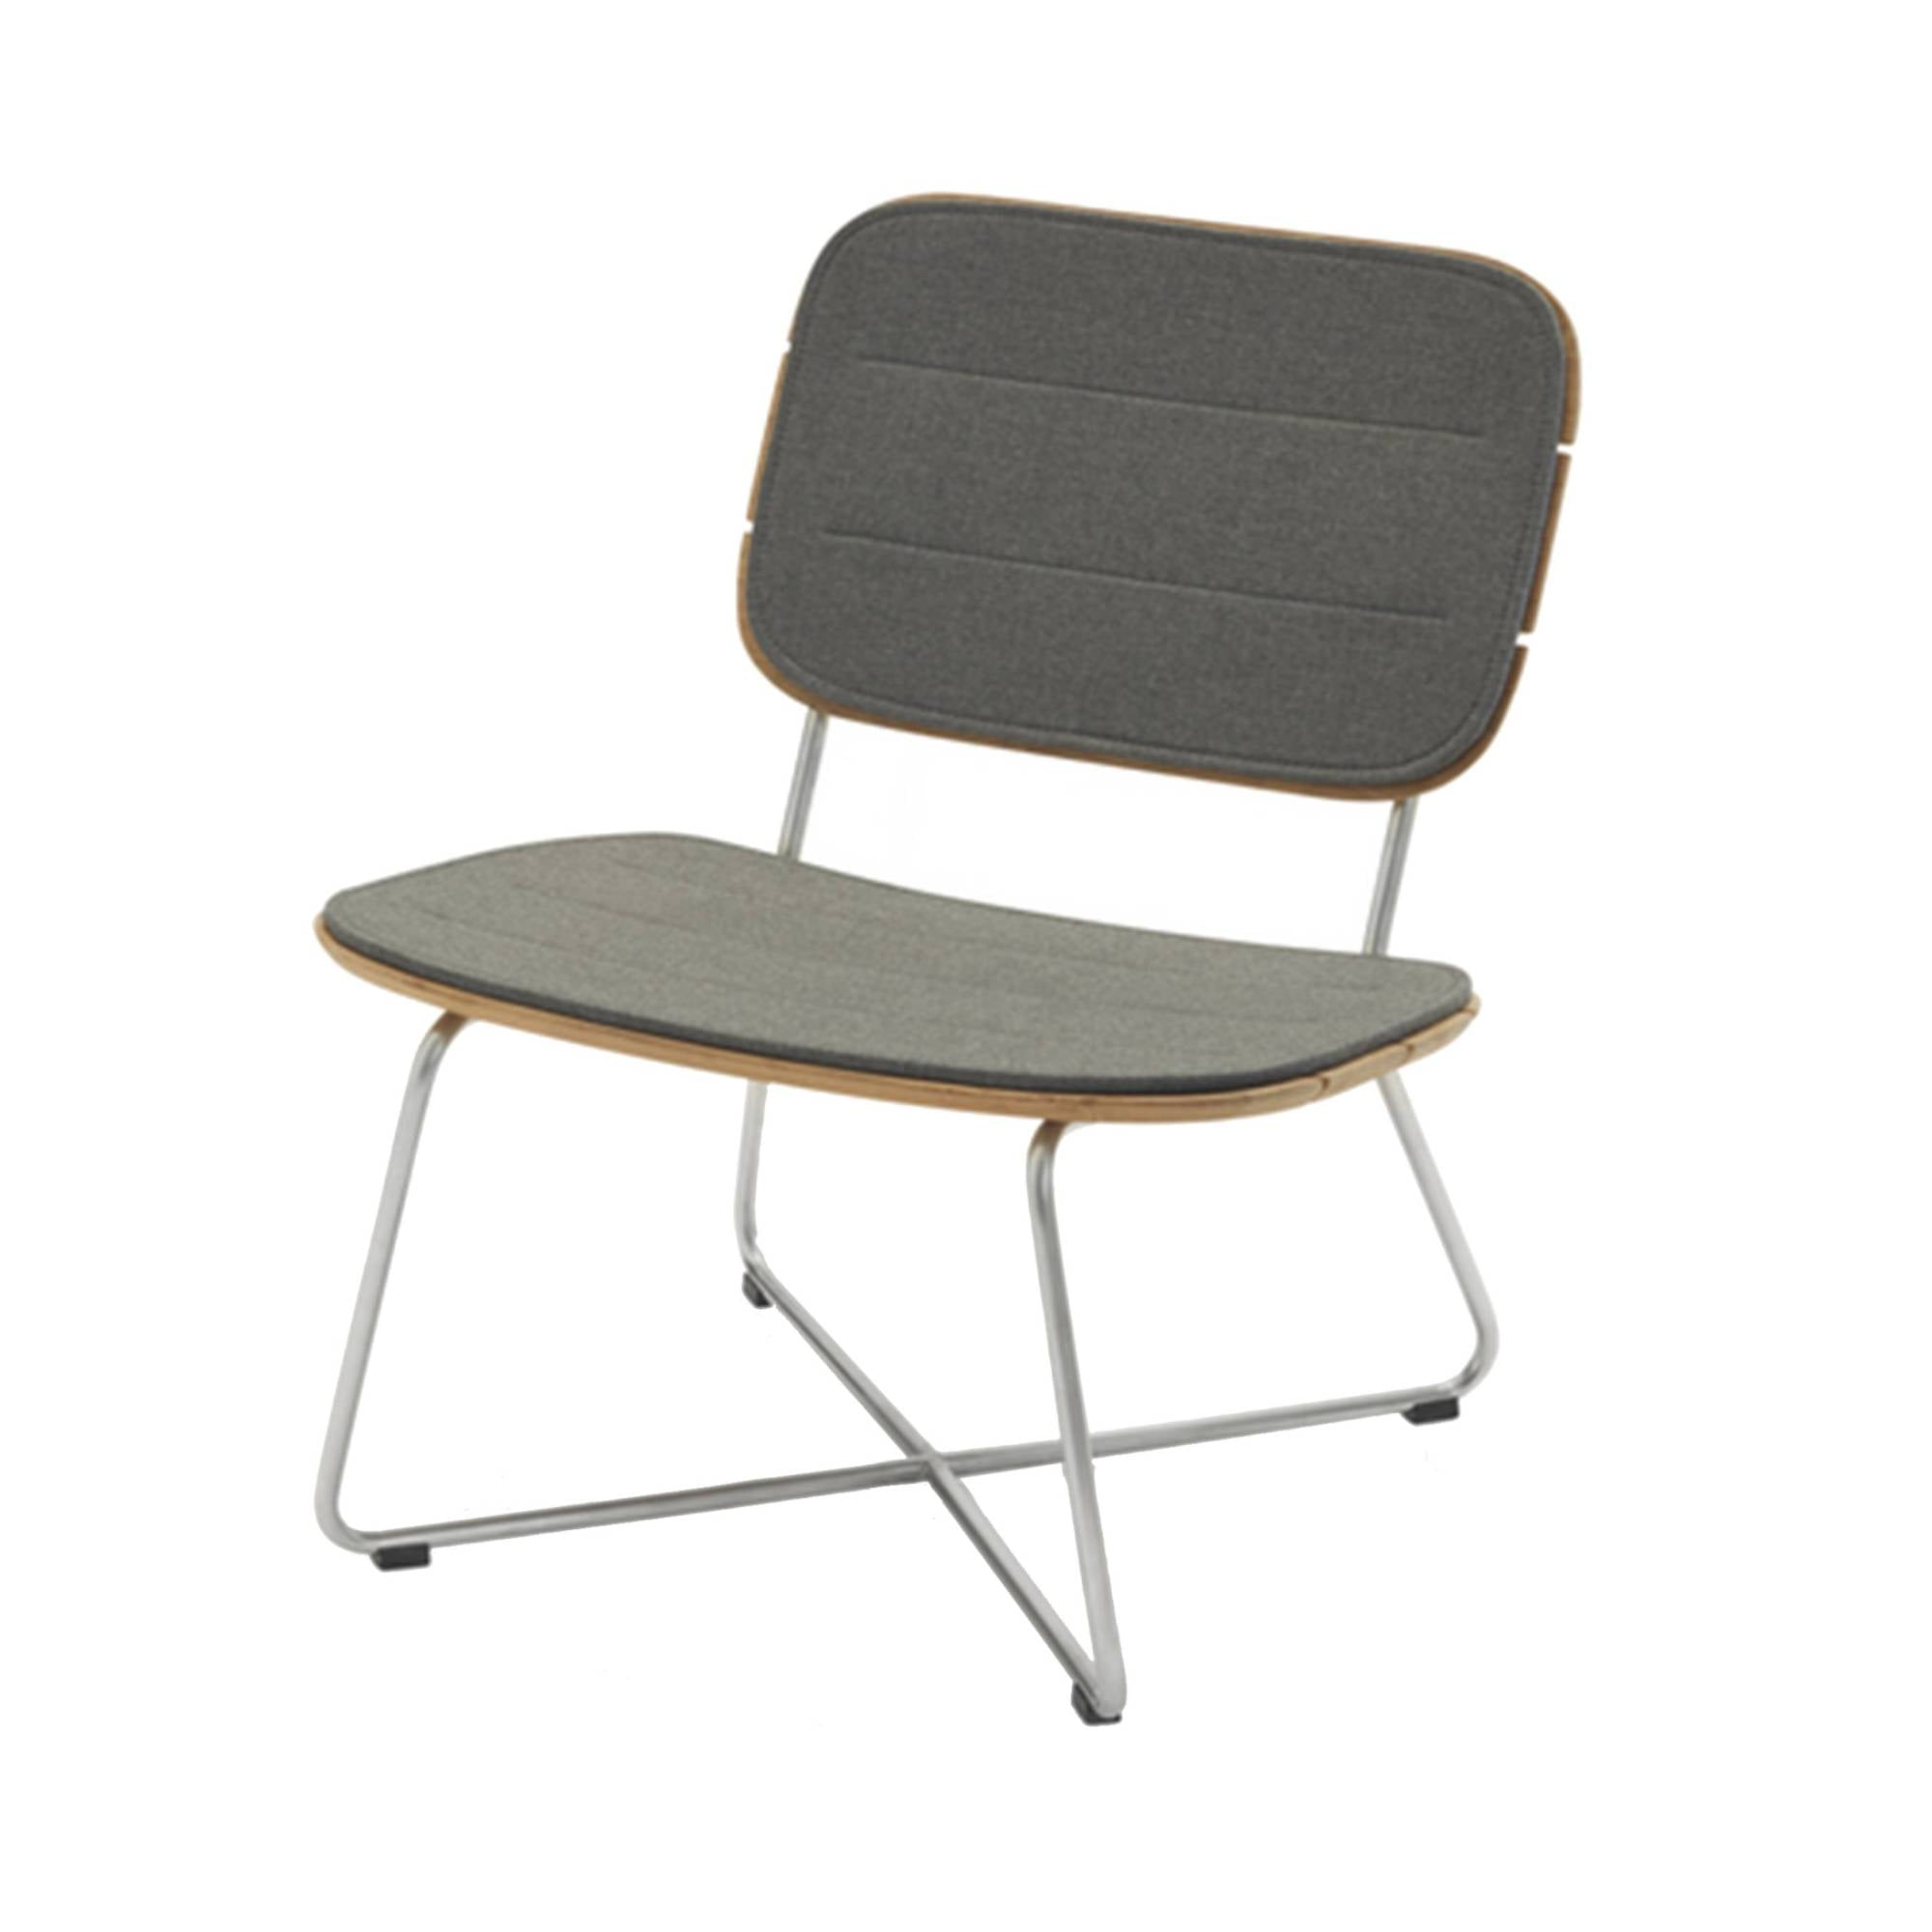 Lilium Lounge Chair: Lilium Lounge Chair + Cushion - Charcoal